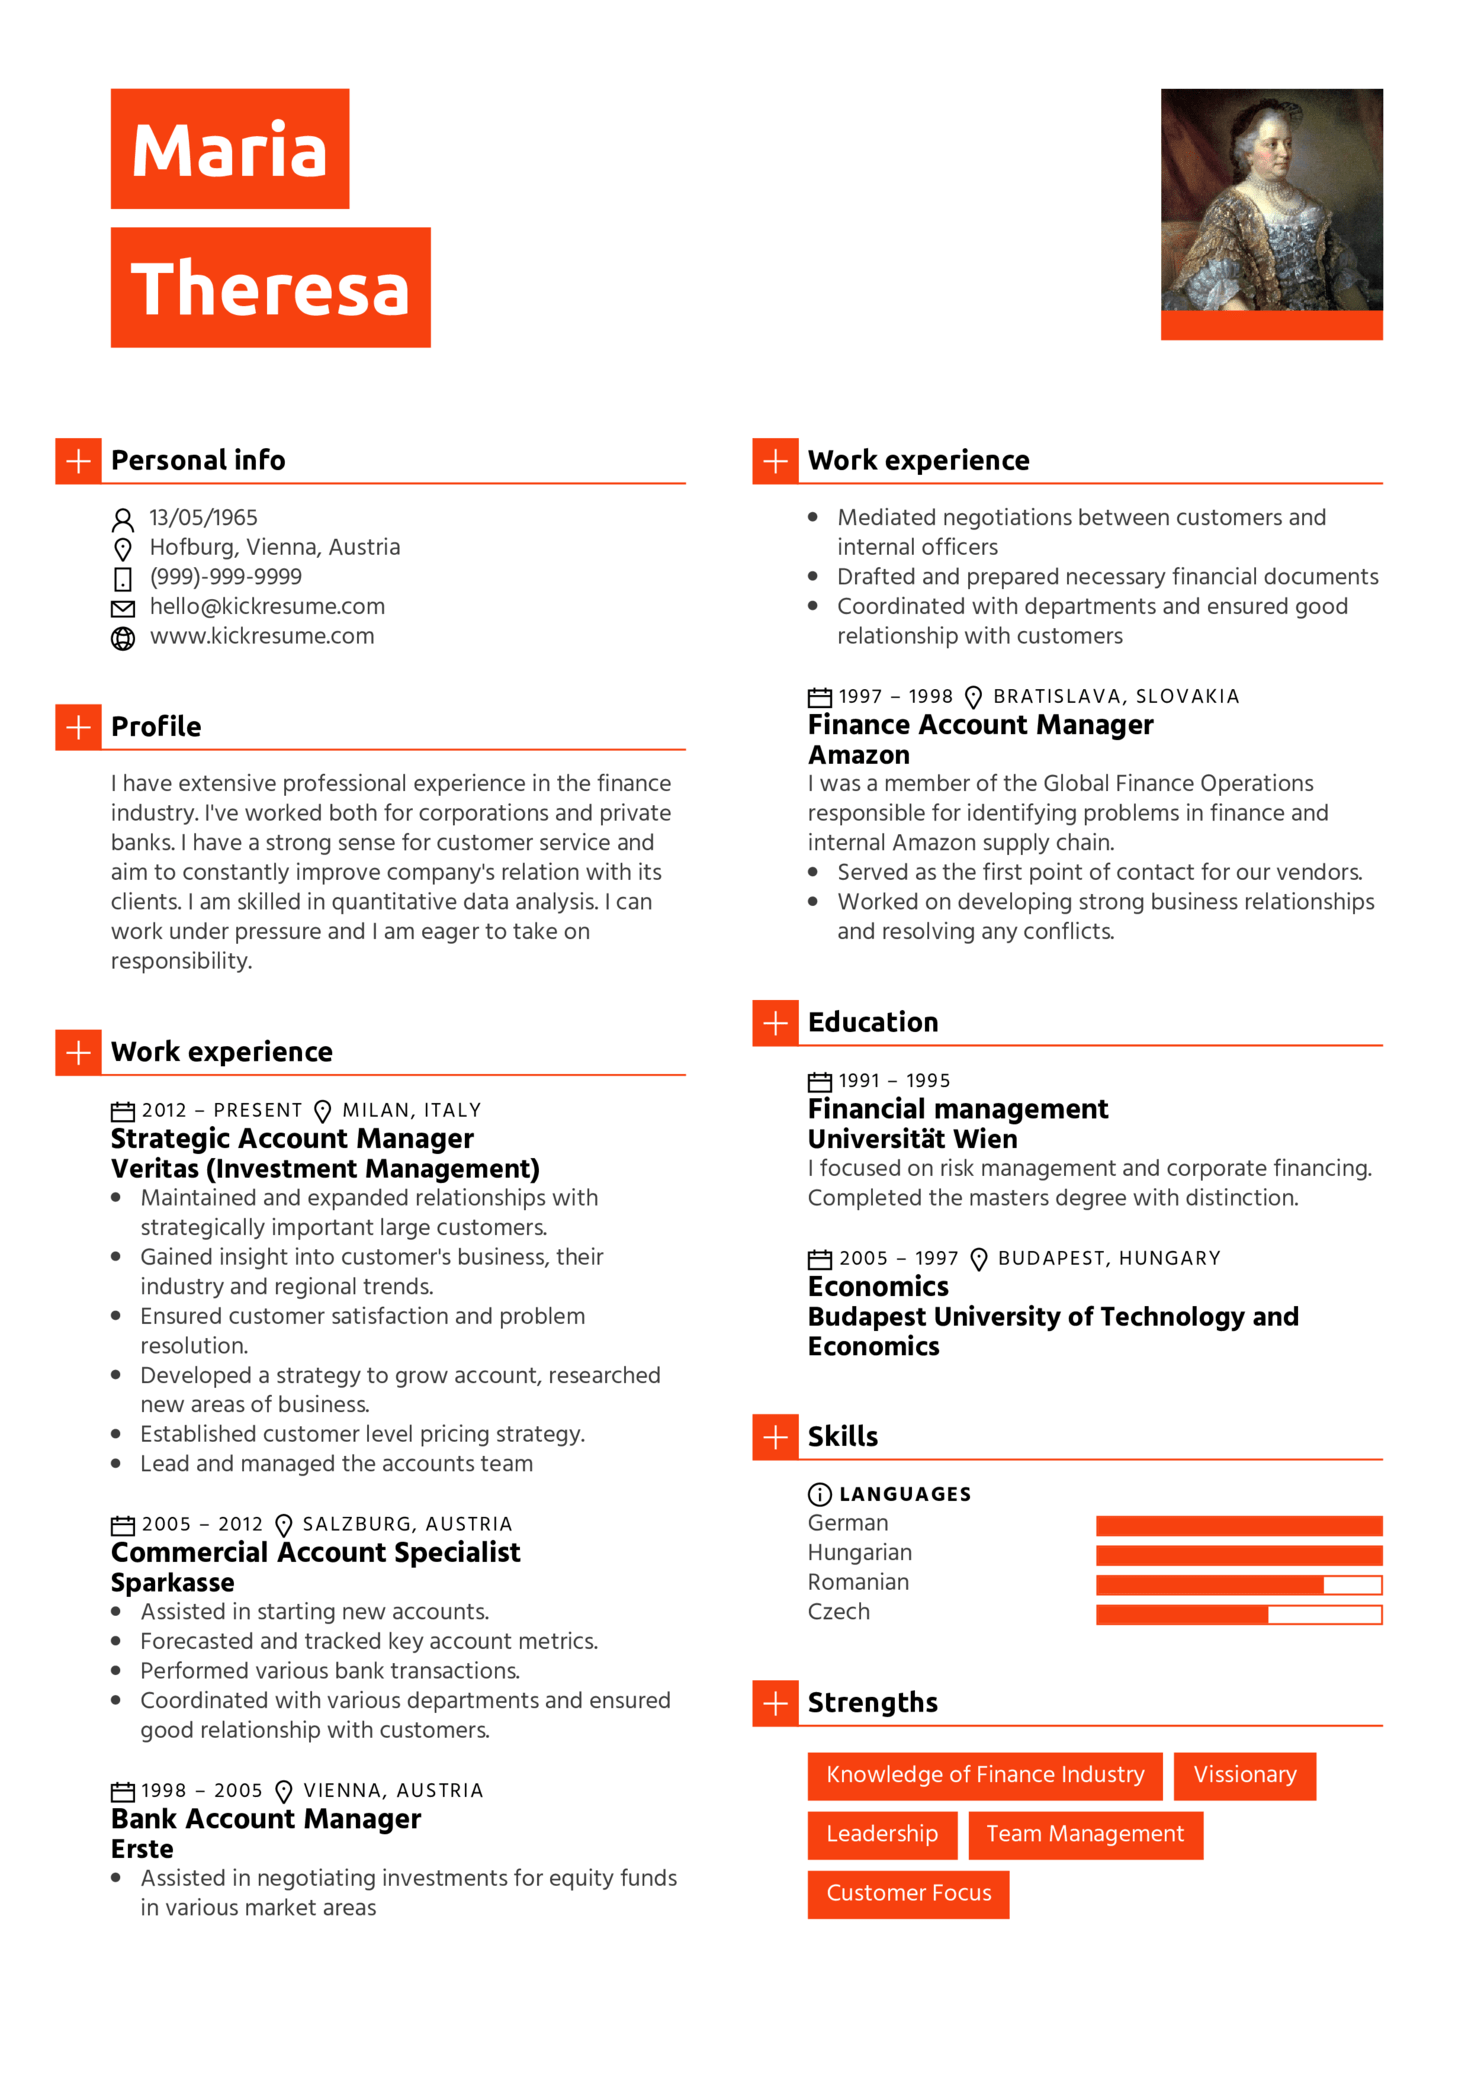 Finance Account Manager Resume Sample | Resume samples | Career help ...